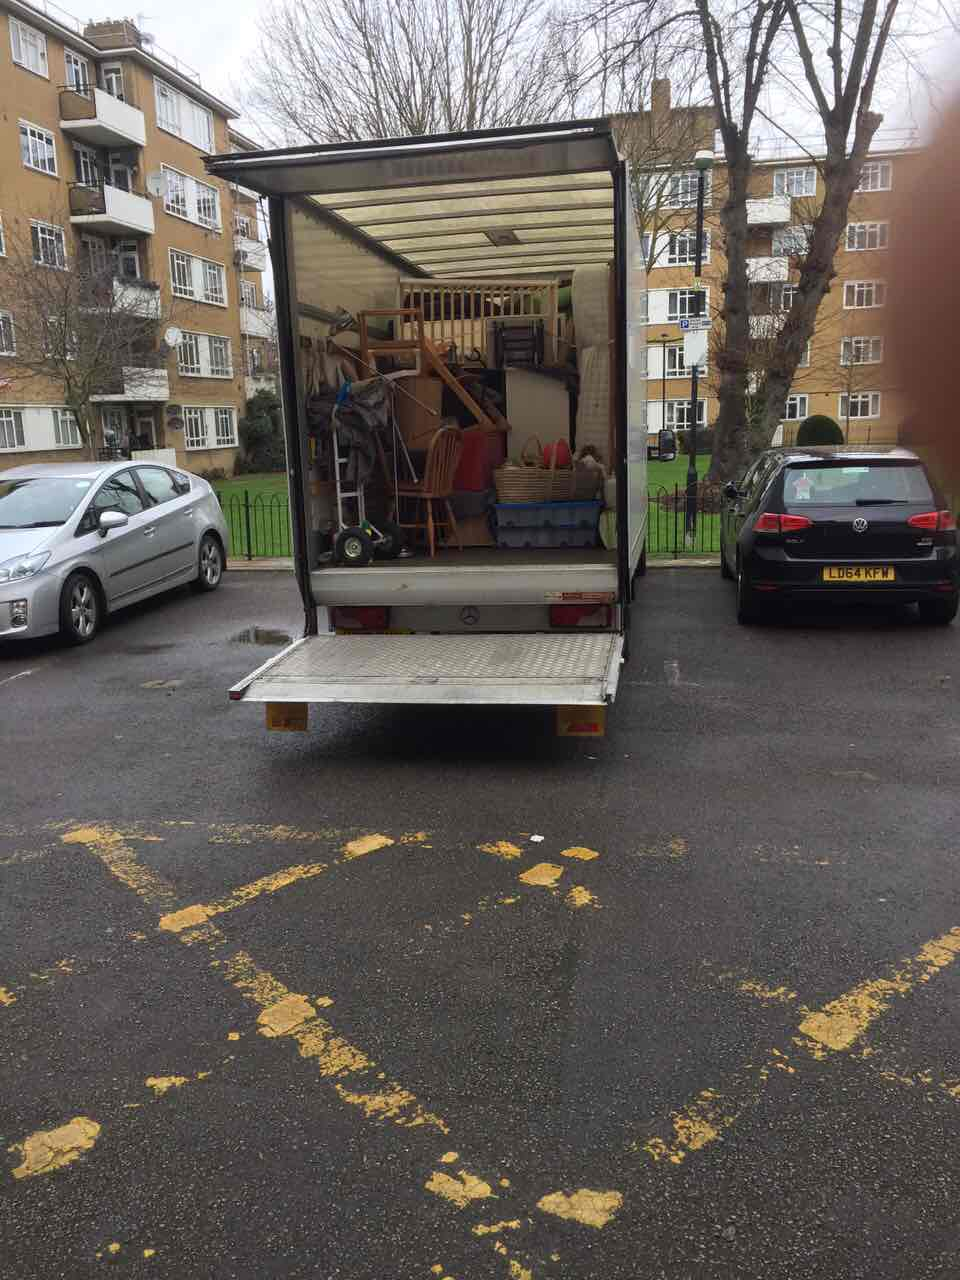 SE1 van for hire in Elephant and Castle